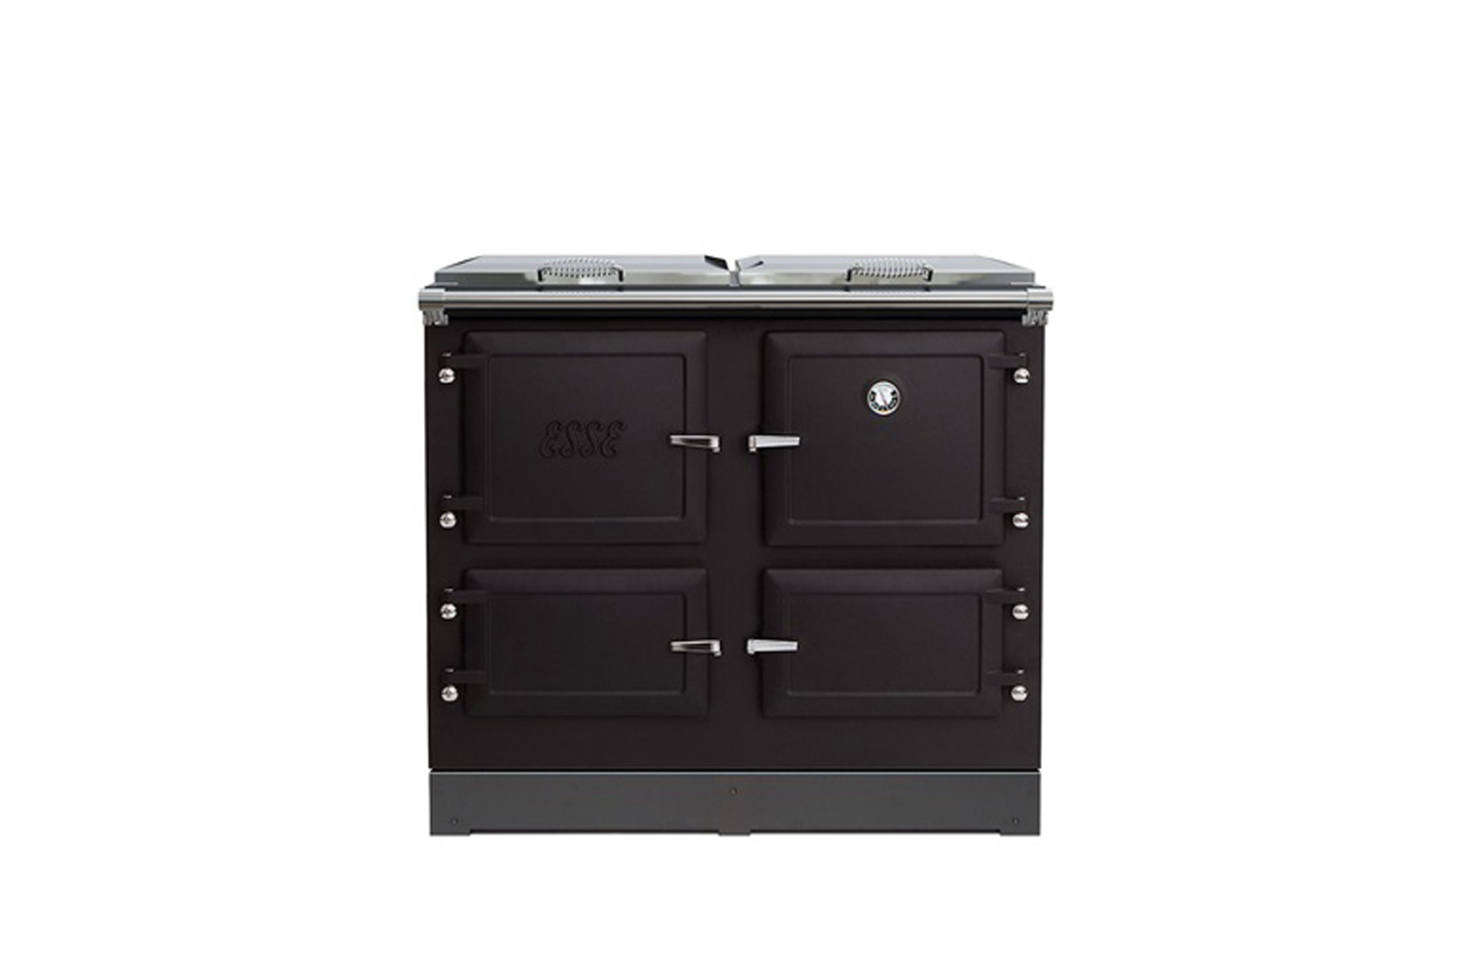 For a similar streamlined British-style range, the Esse 990 ELX Matt Black is available from Walter Dix & Co. For other options see our post Easy Pieces: Retro Kitchen Ranges.